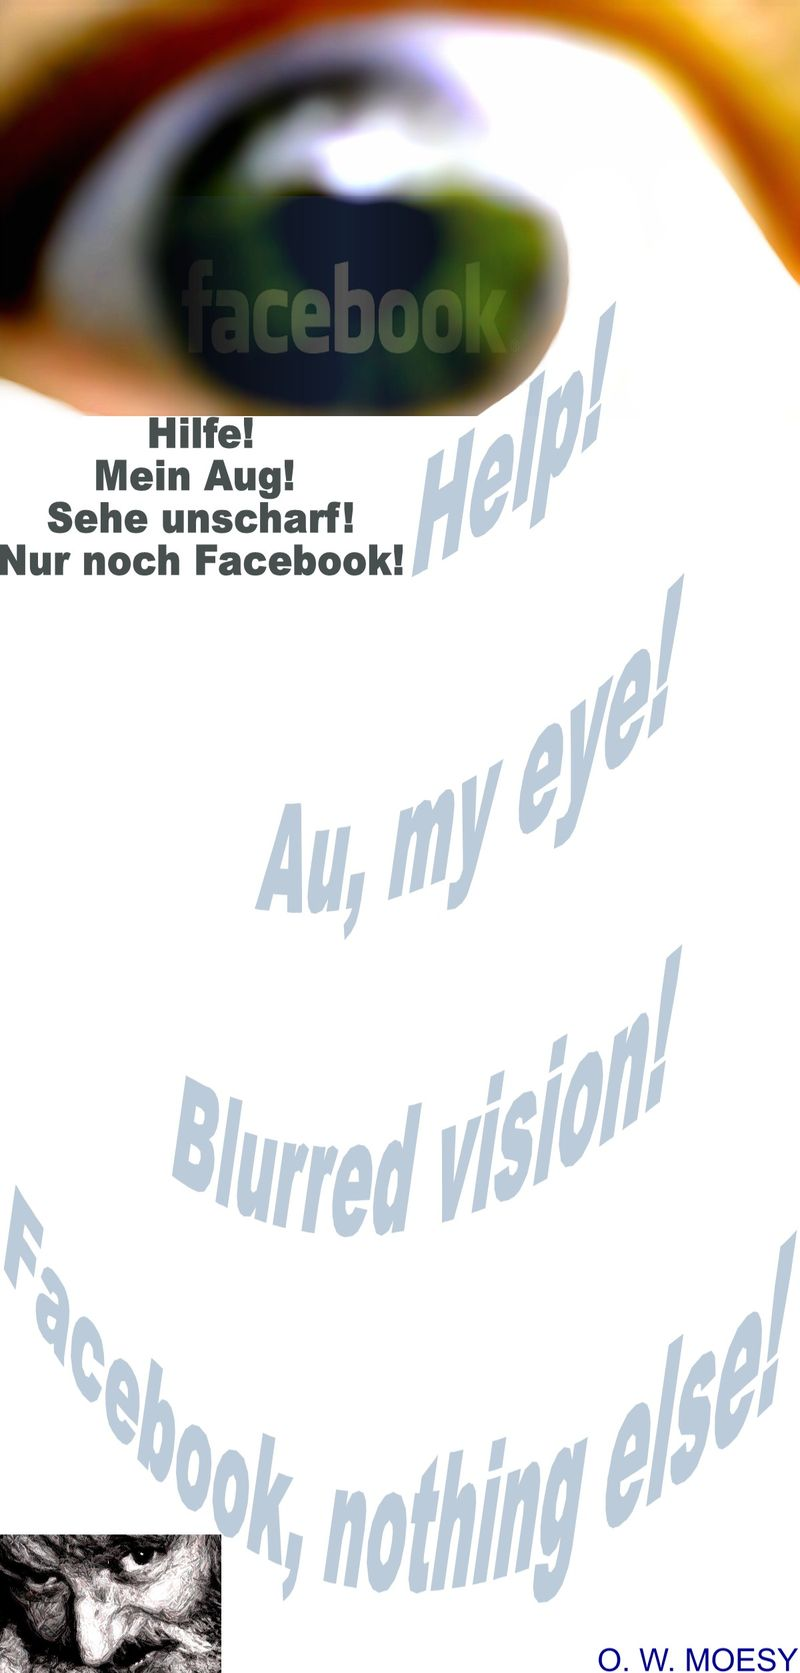 Help! Au, my eye! Blurred vision! Facebook, nothing else!